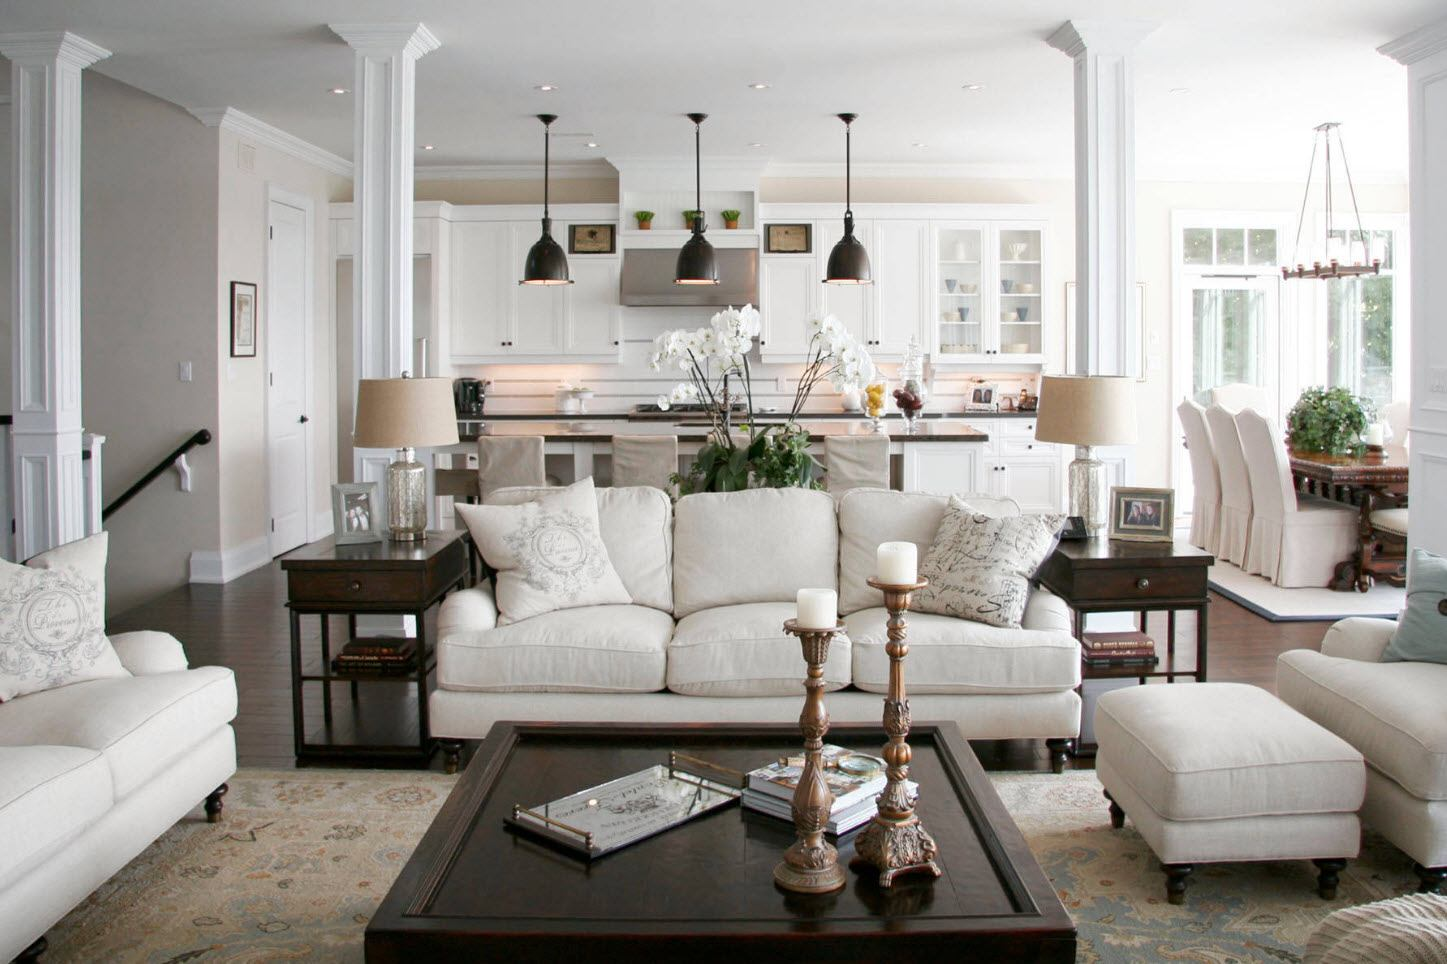 150 Square Feet Living Room Best Arrangement Ideas. Classic decoration and suspended lamps over the living zone